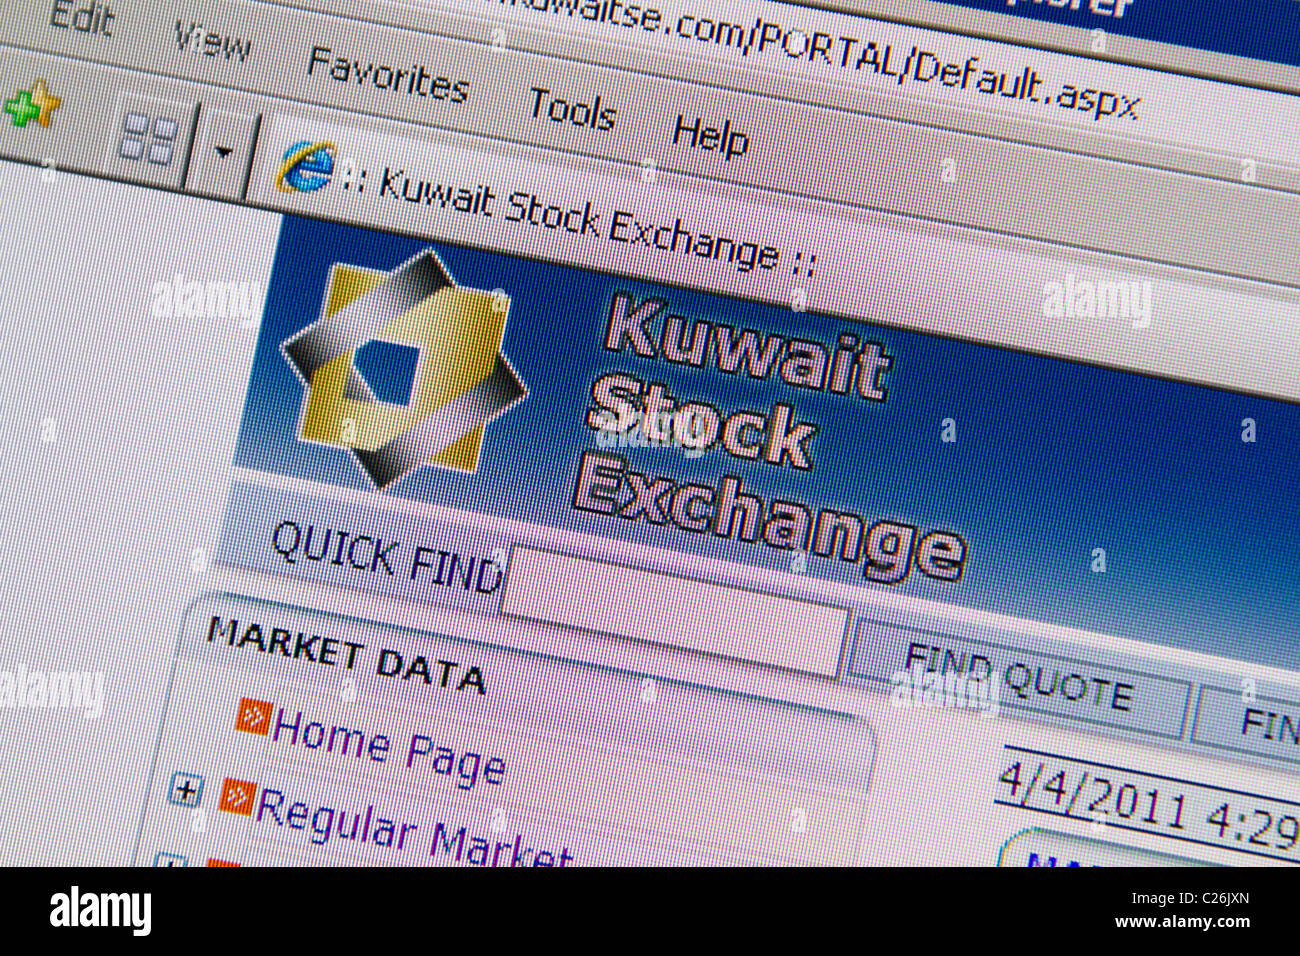 Kuwait Stock Exchange website - Stock Image